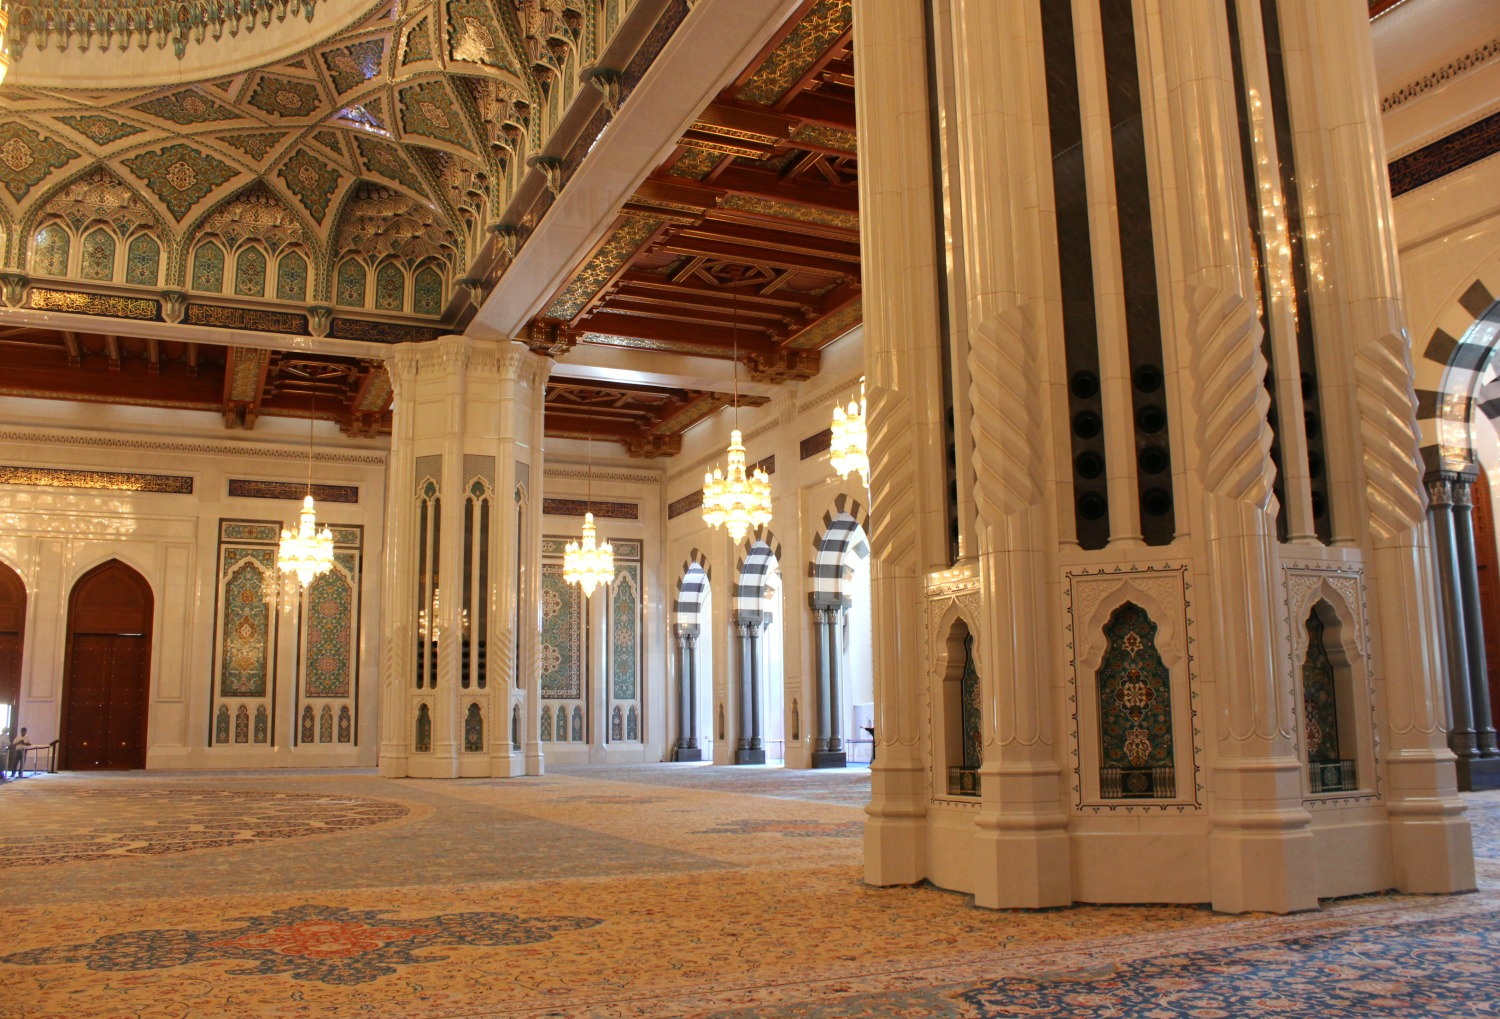 The magnificent men's prayer hall at the Sultan Qaboos Grand Mosque in Muscat - my tips for spending 24 hours in Muscat, Oman with kids